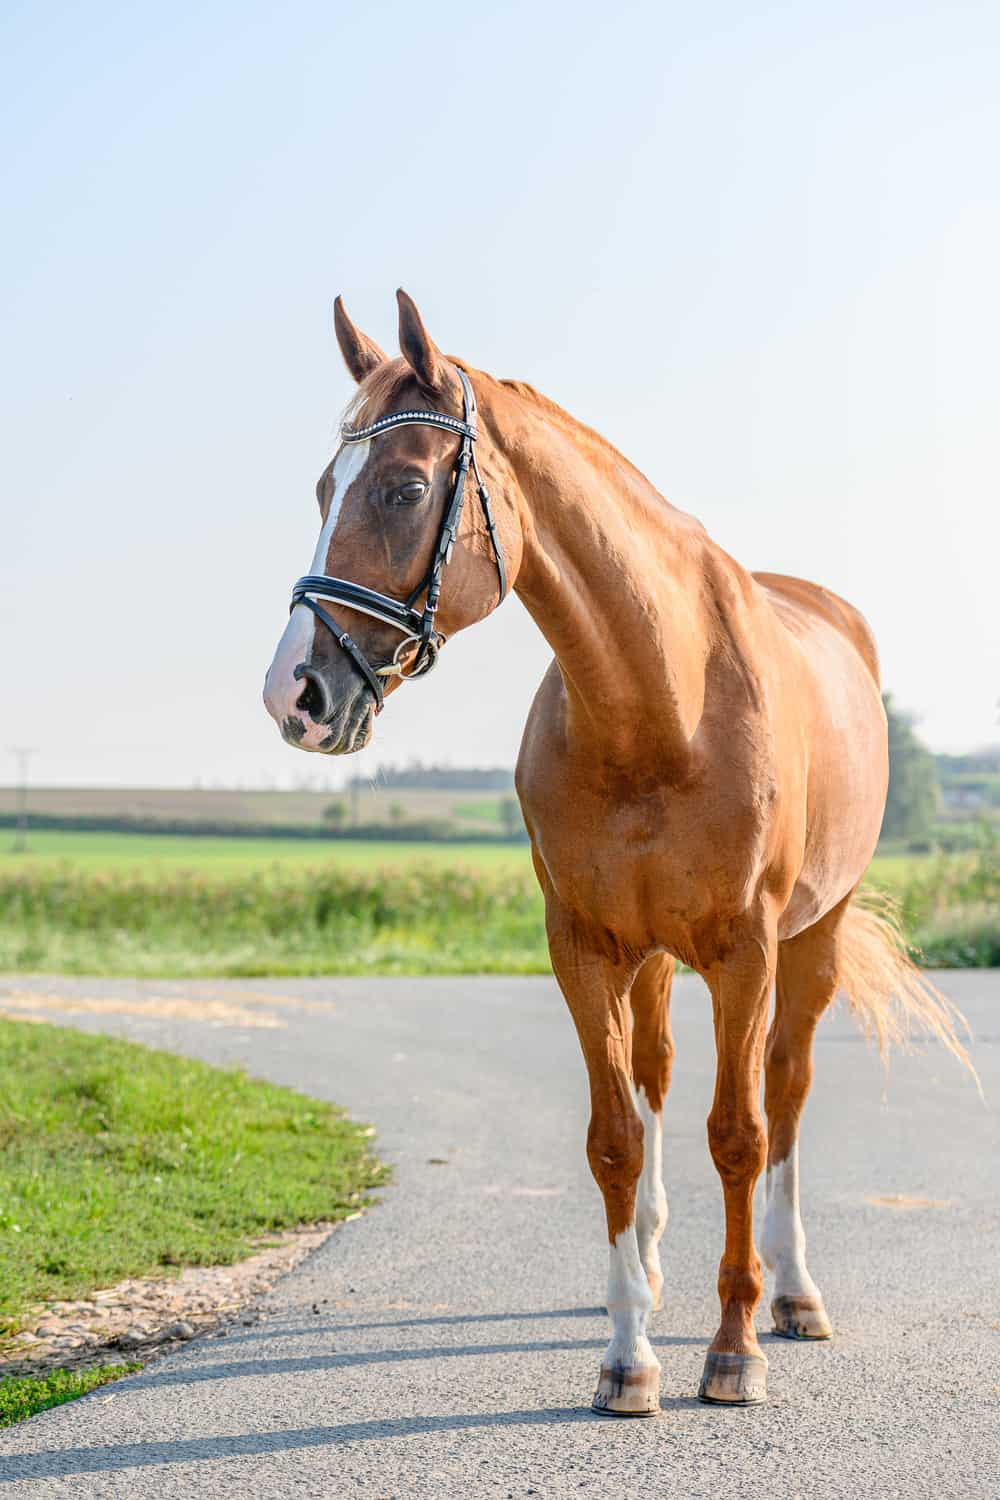 FAQs About Bay Horses